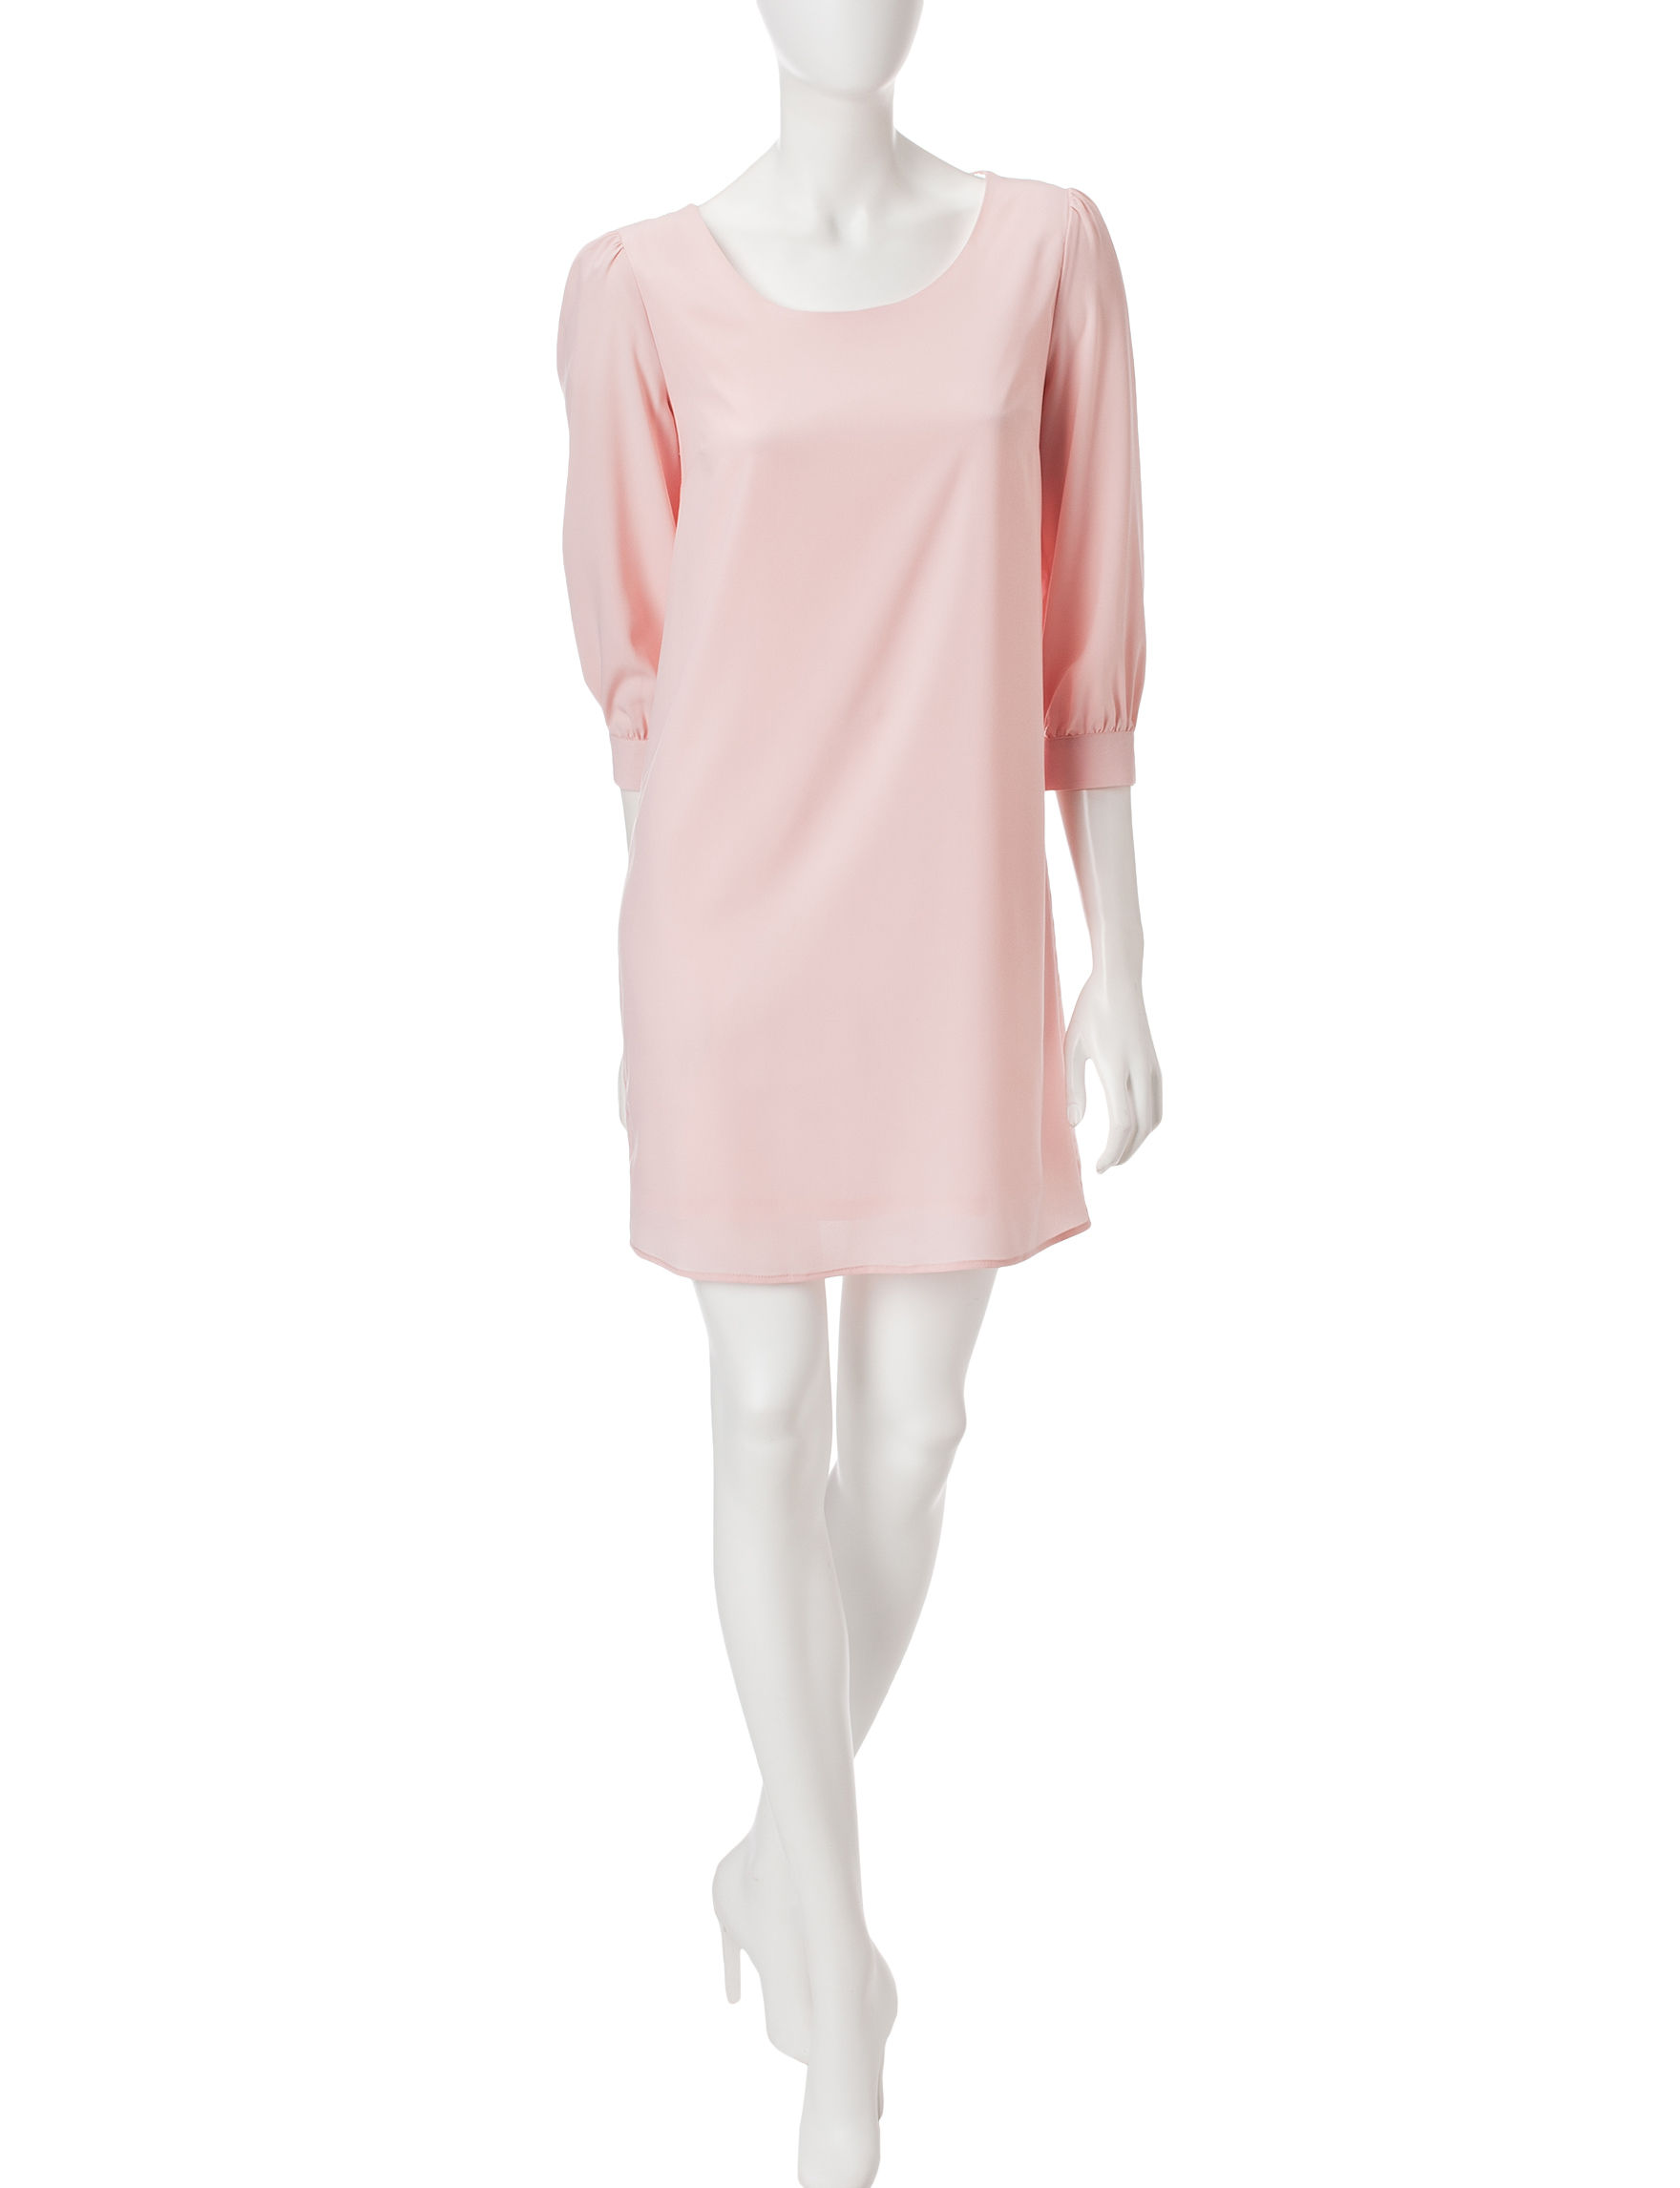 JM Studio Pink Everyday & Casual Shift Dresses